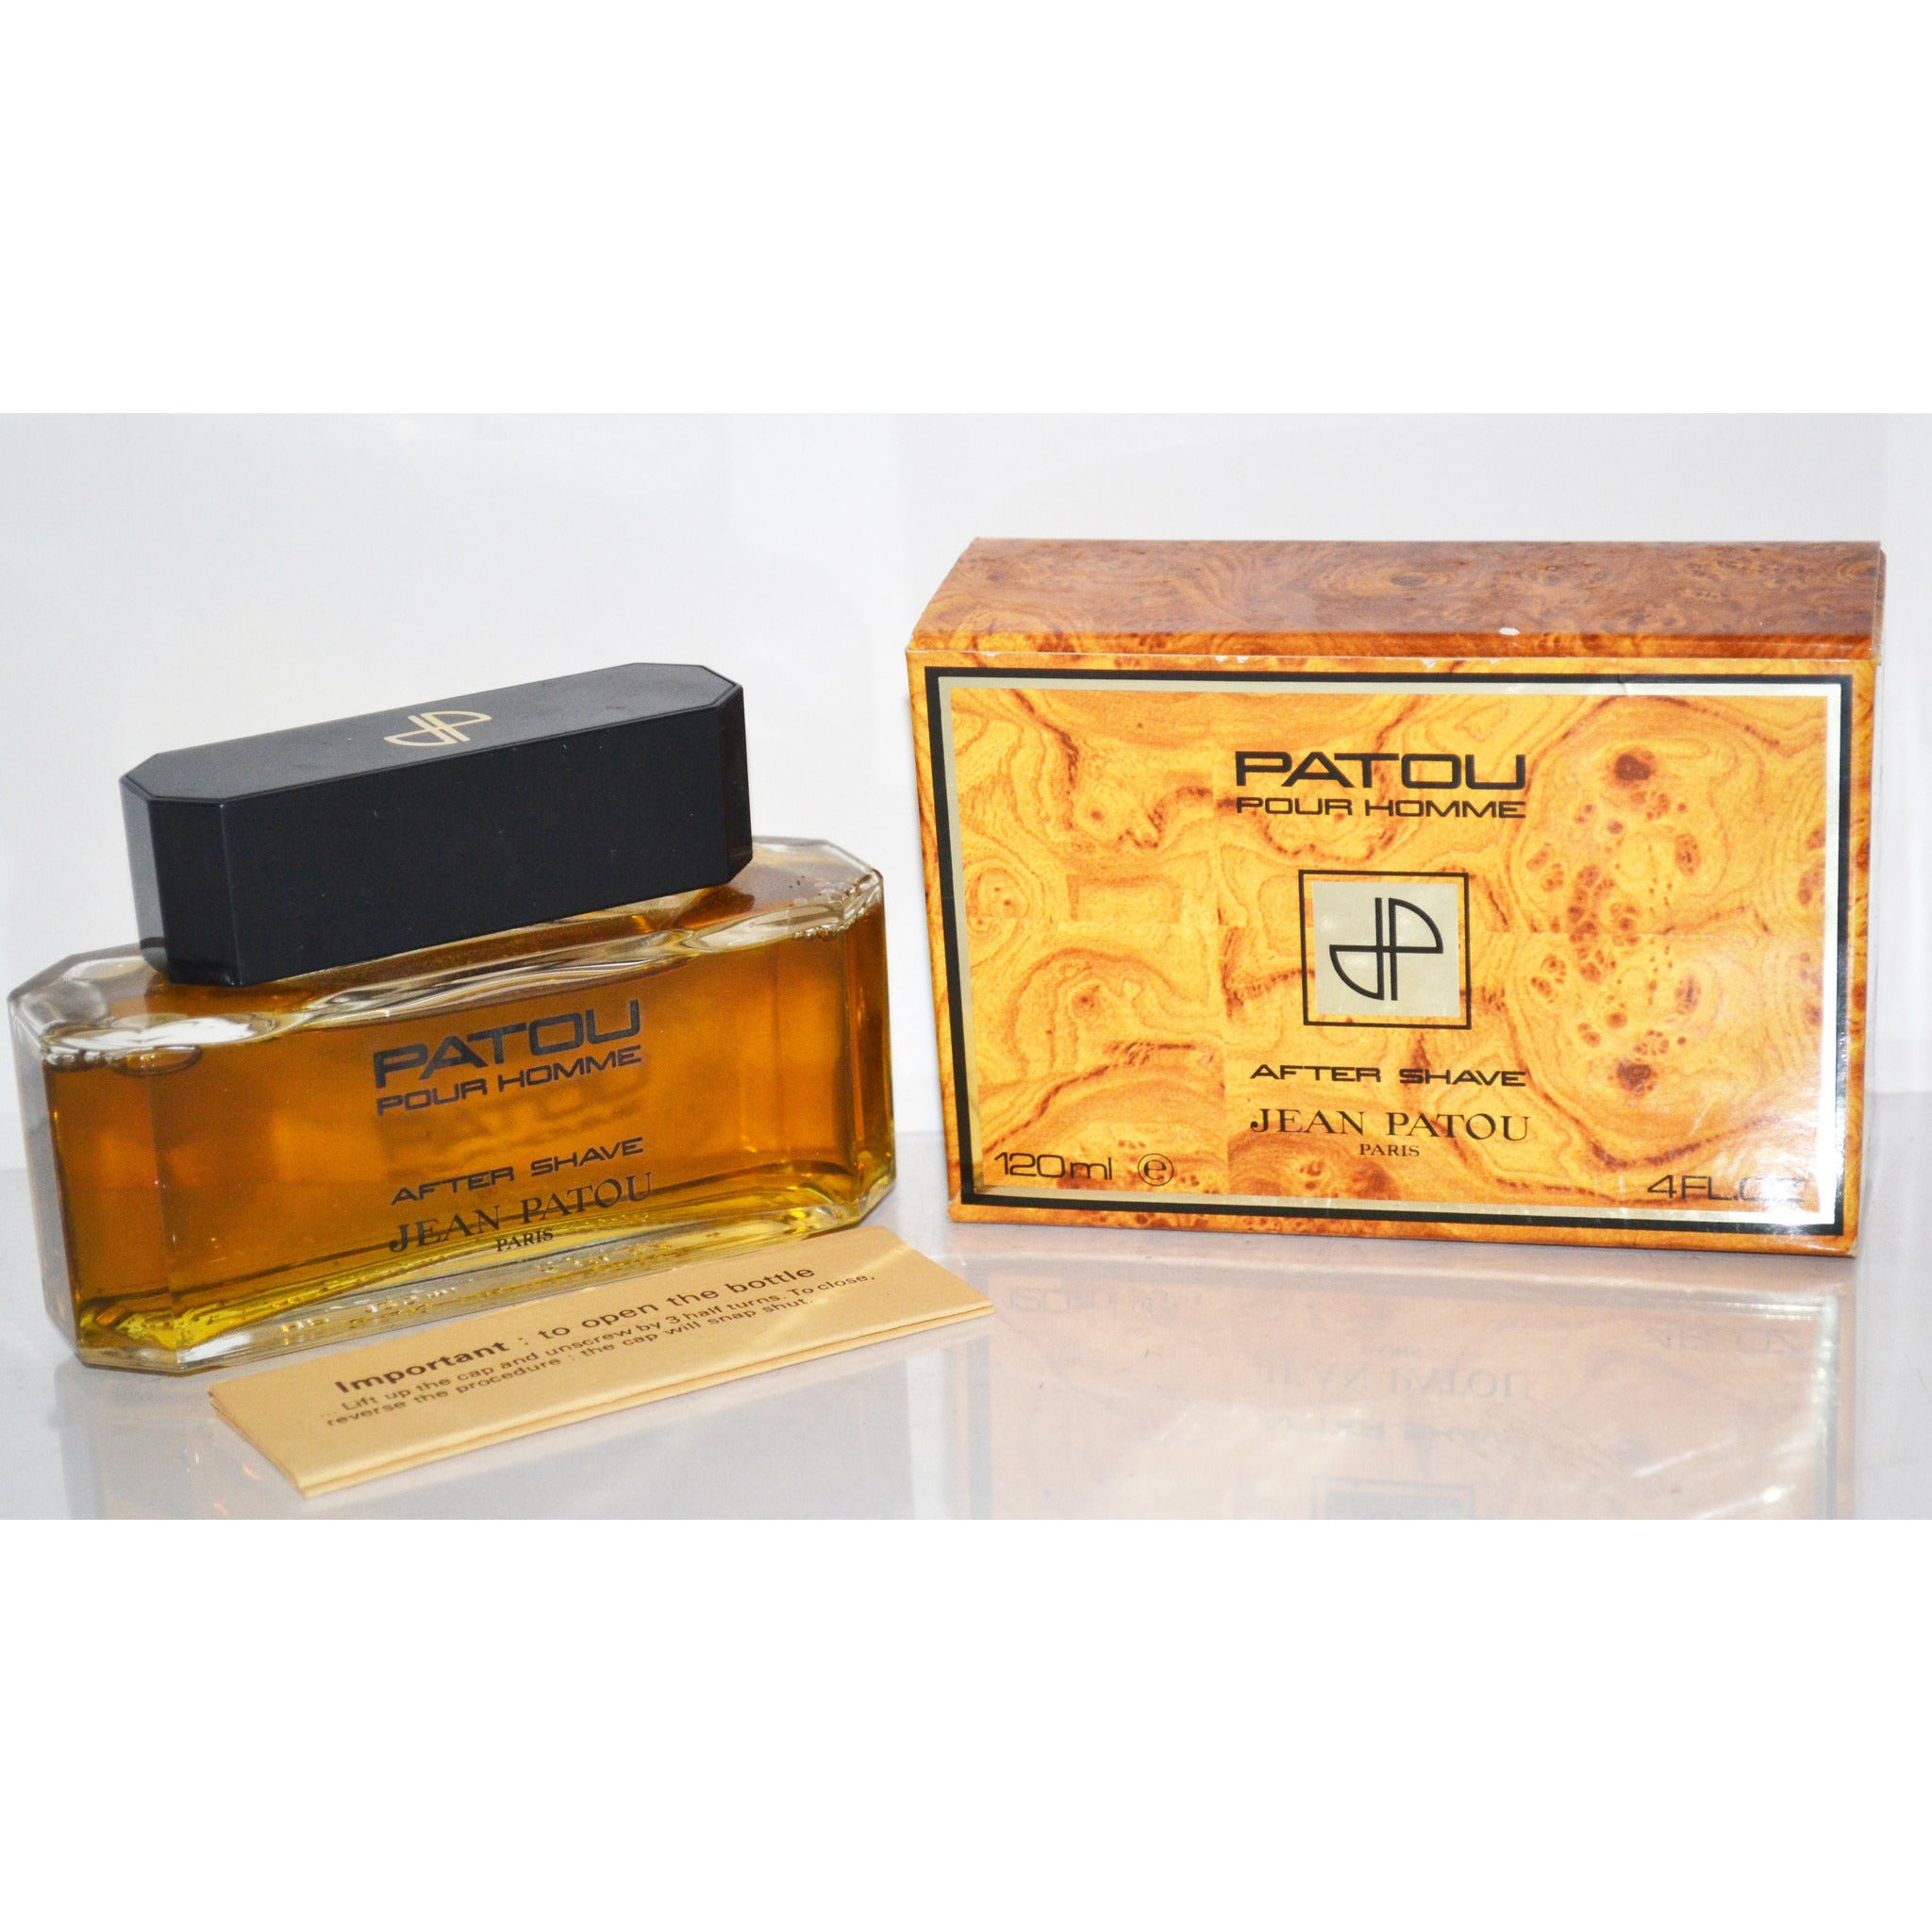 Vintage Patou Pour Homme After Shave By Jean Patou